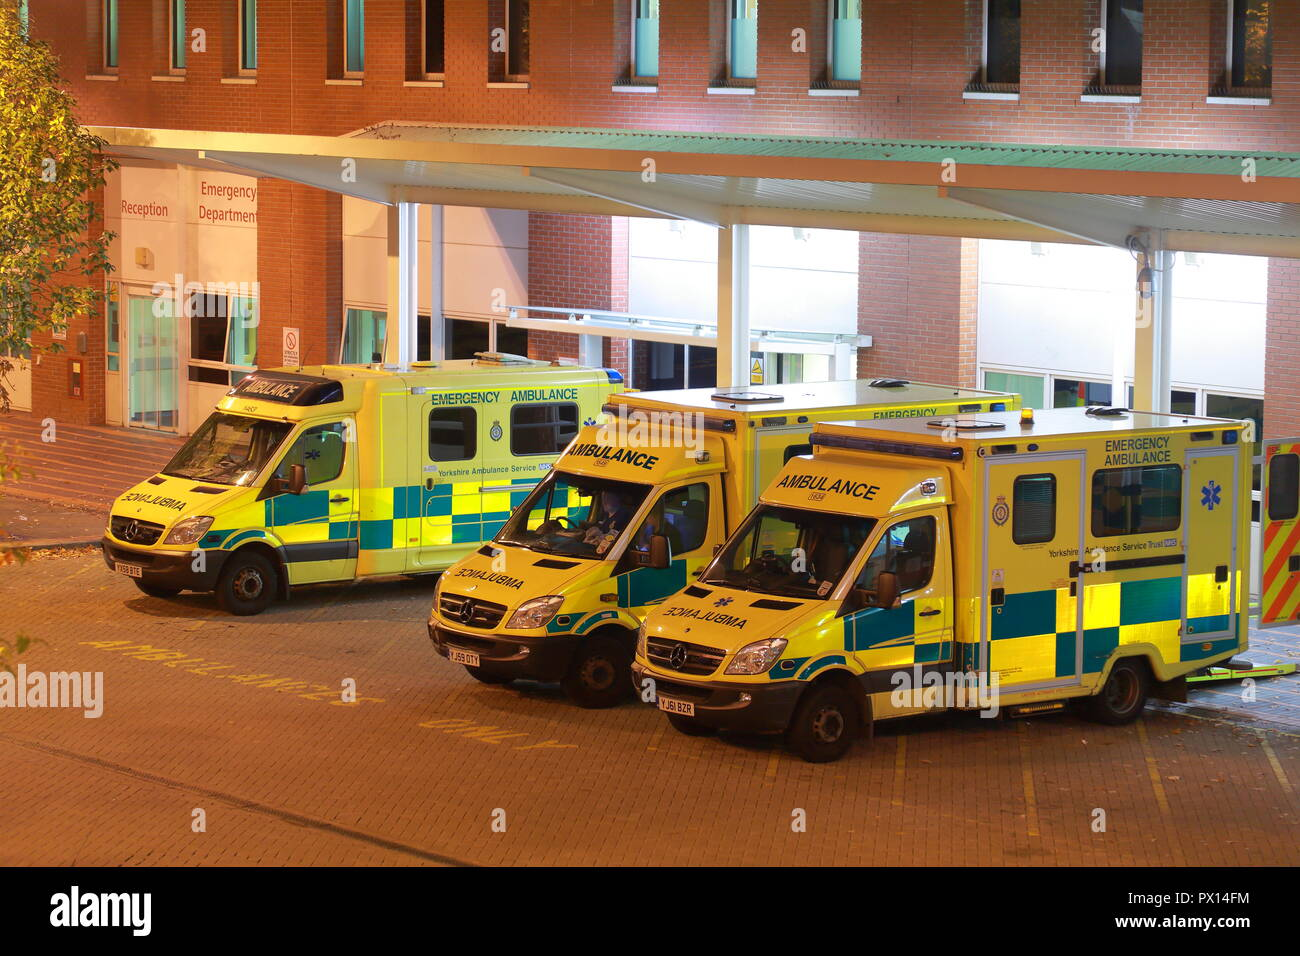 Ambulances at Leeds General Infirmary Accident & Emergency Department Stock Photo